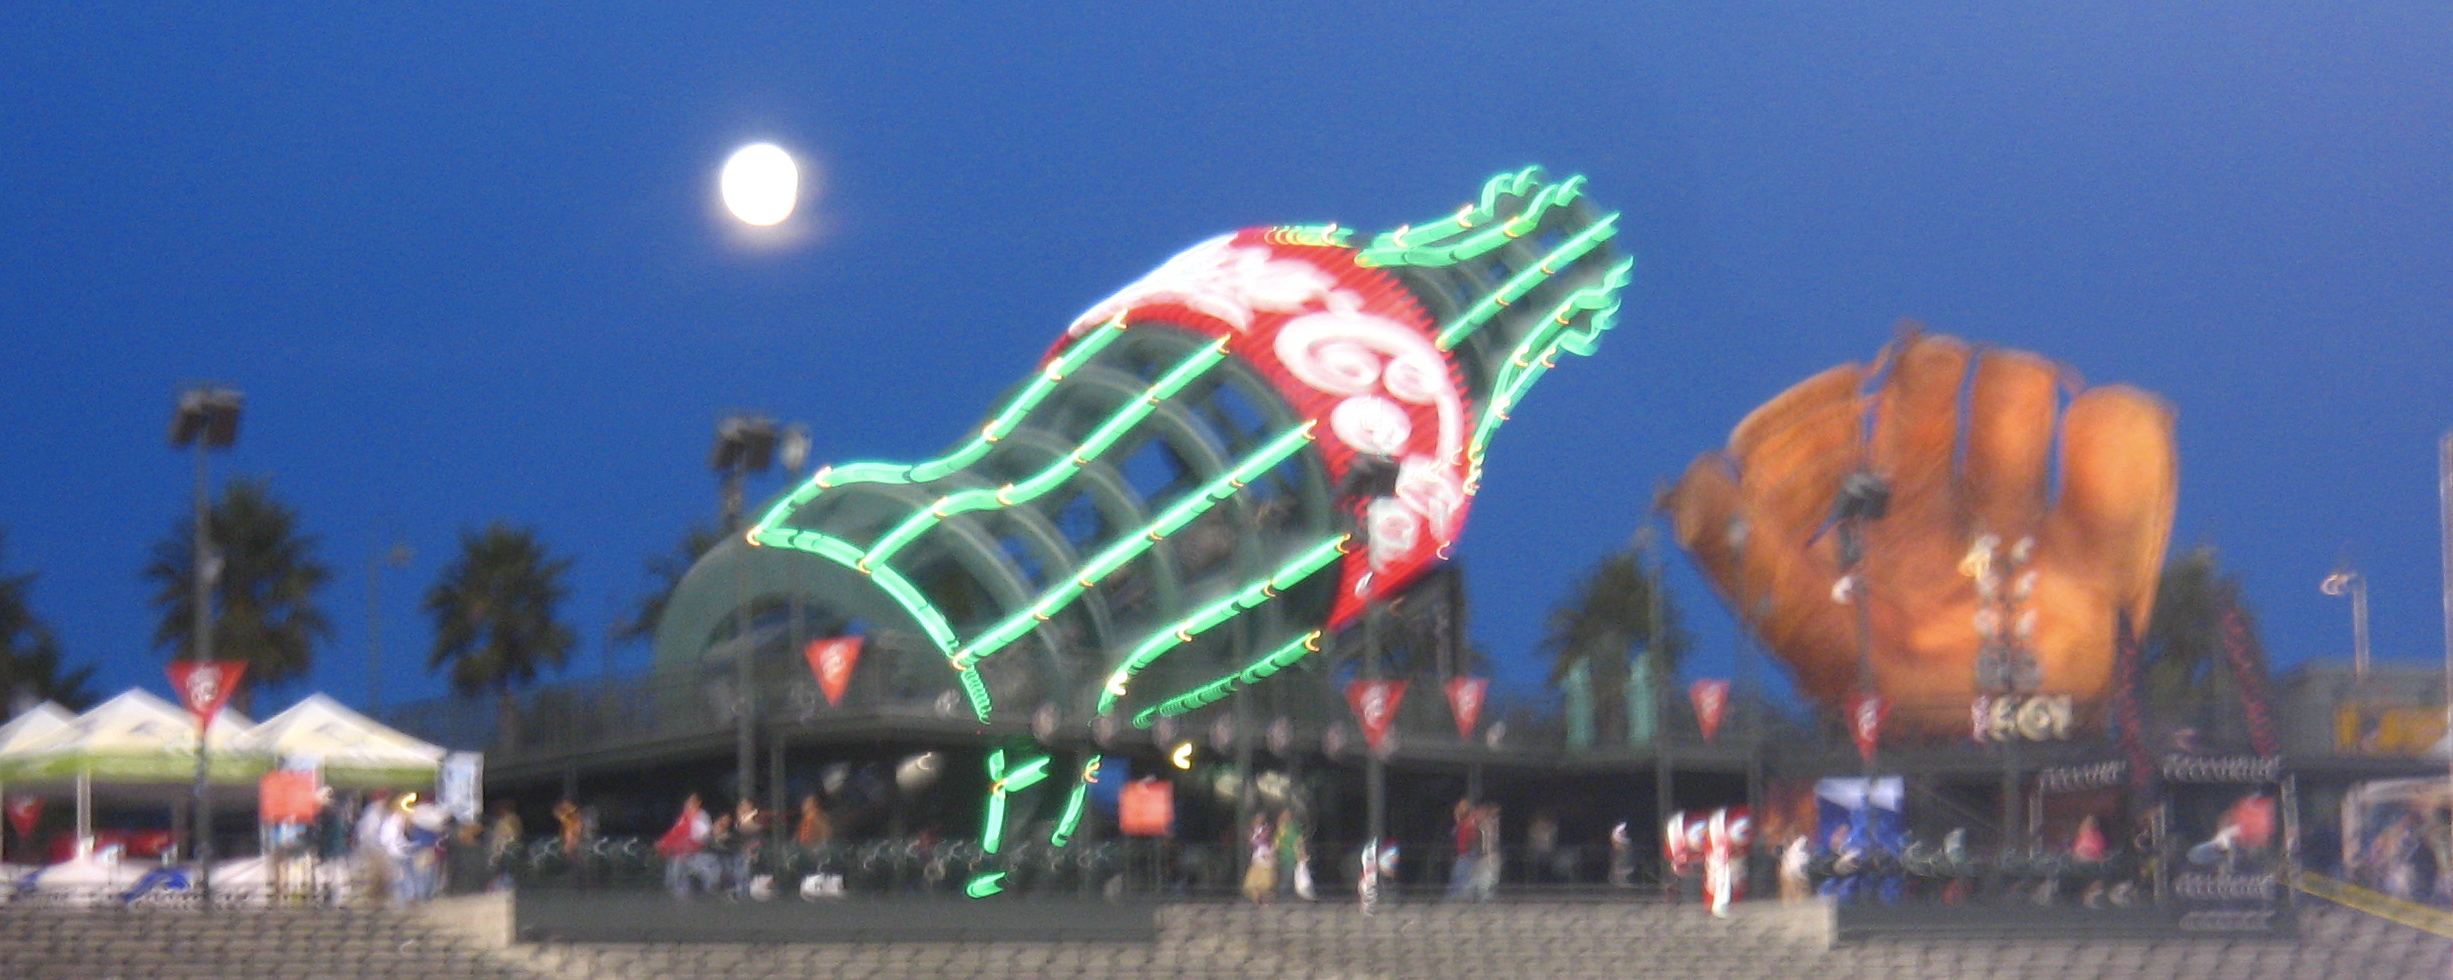 Moon Over the Coke Glove